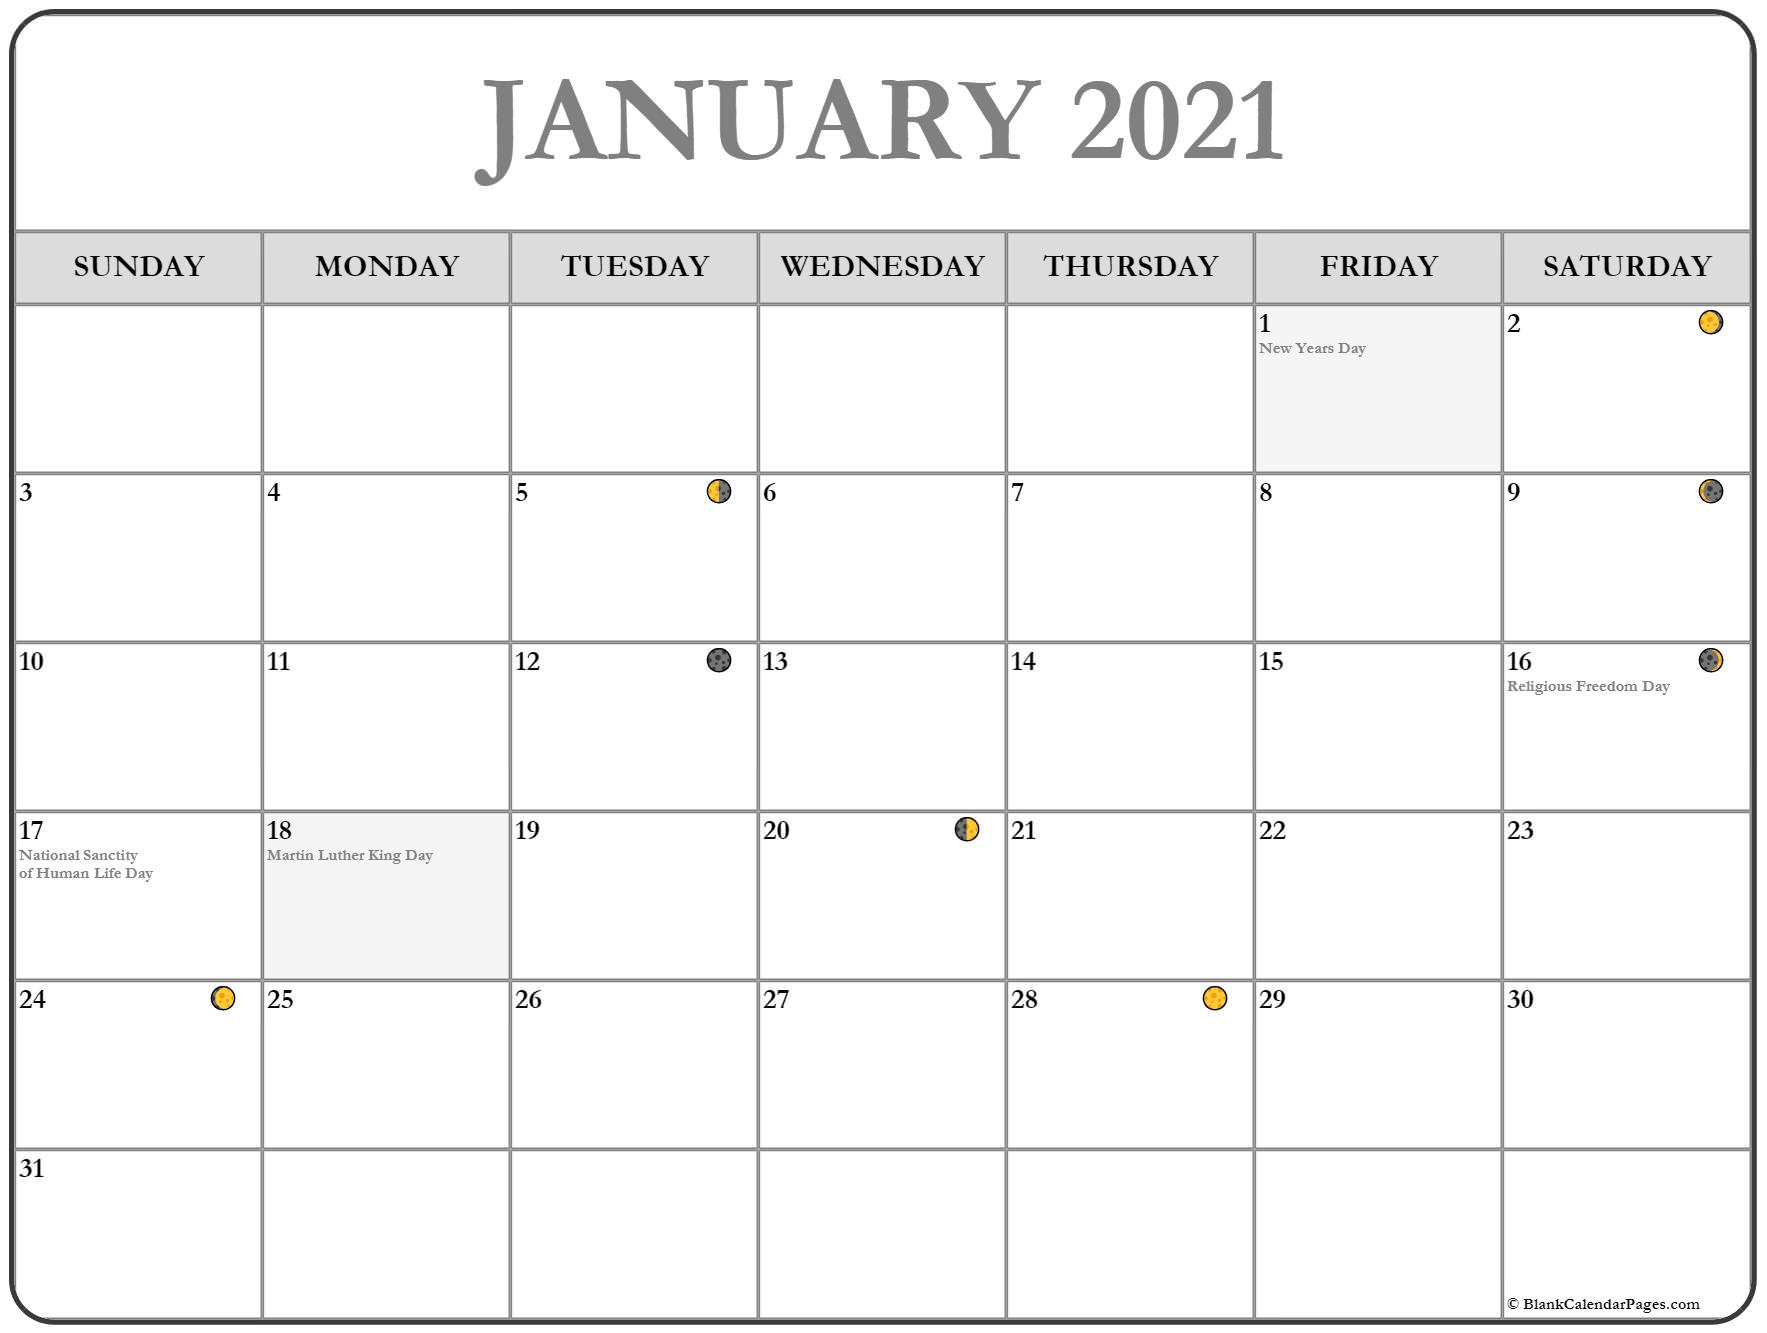 January 2021 Moon Phases Calendar Template